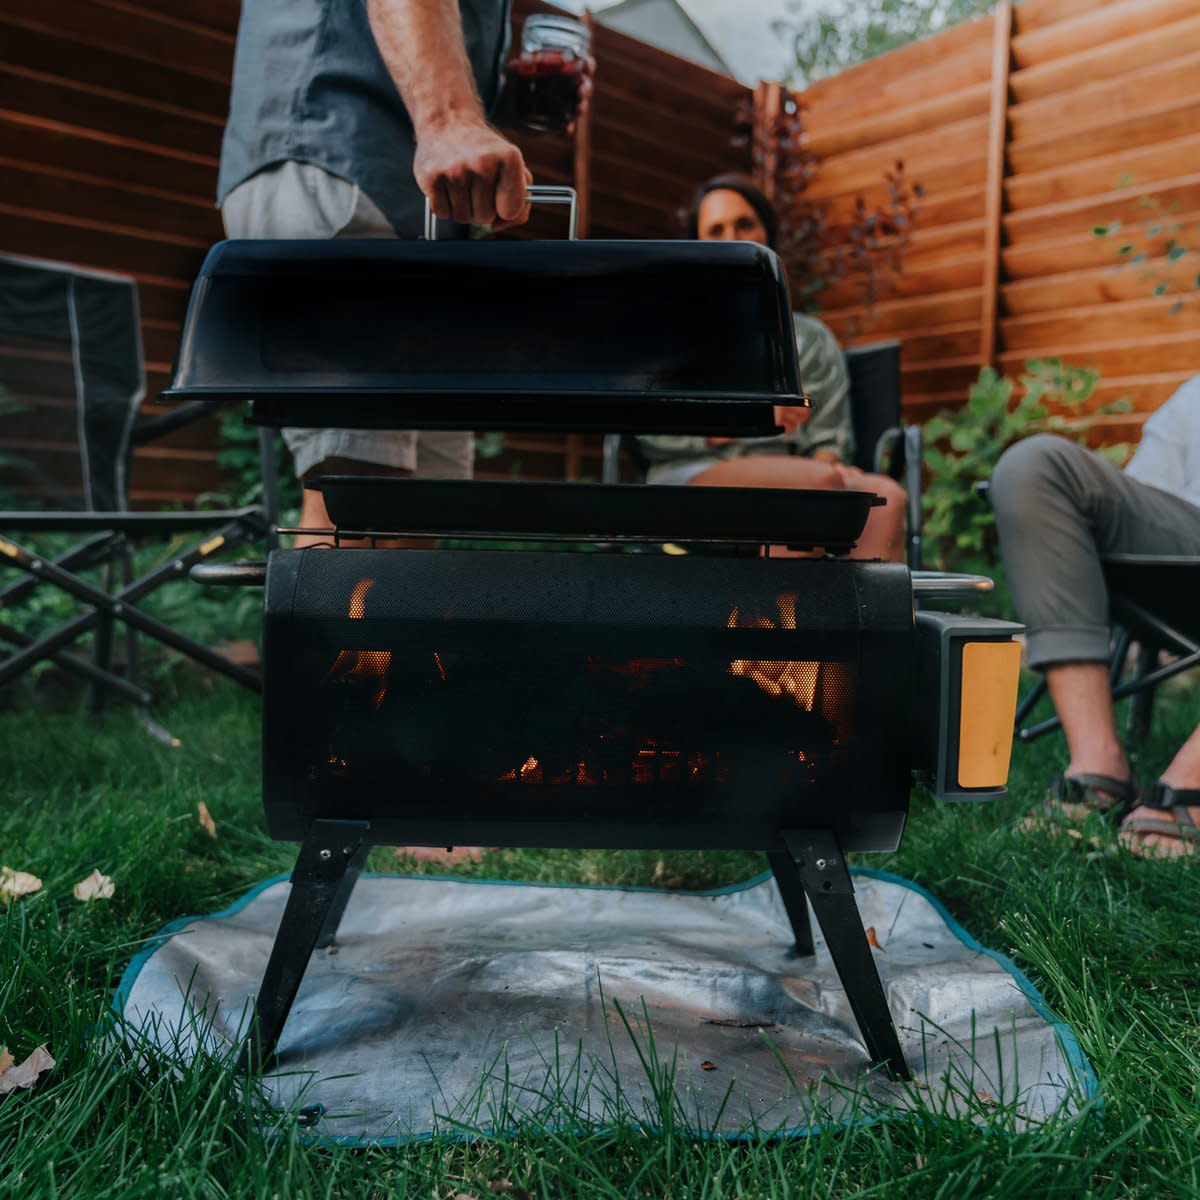 BioLite Outdoor Fire Pit Cooking Kit